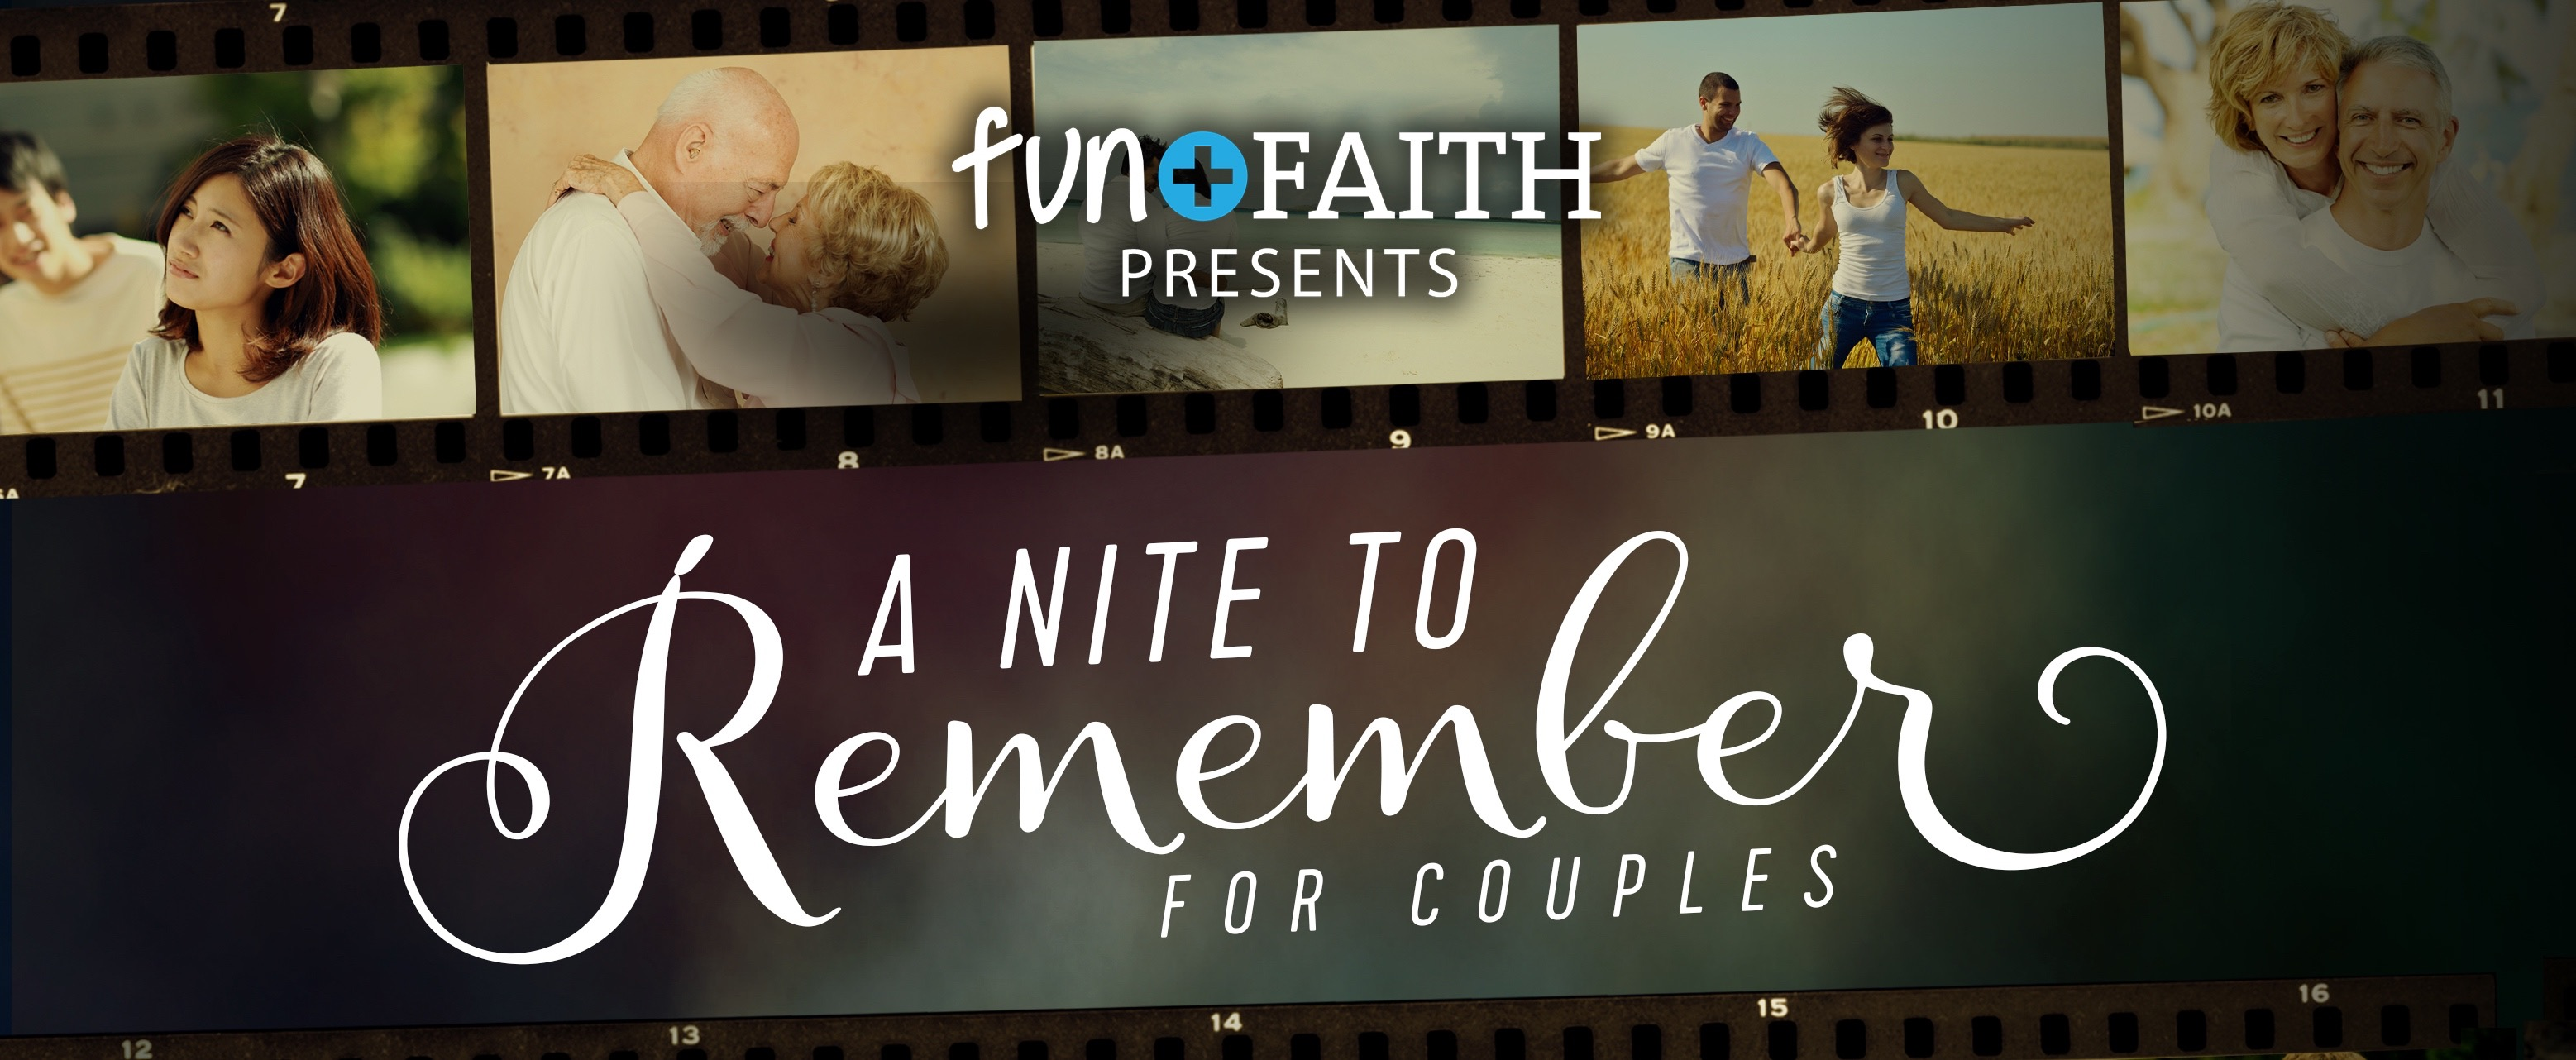 Tickets for A Nite To Remember for Couples in Panama City Beach from BuzzTix